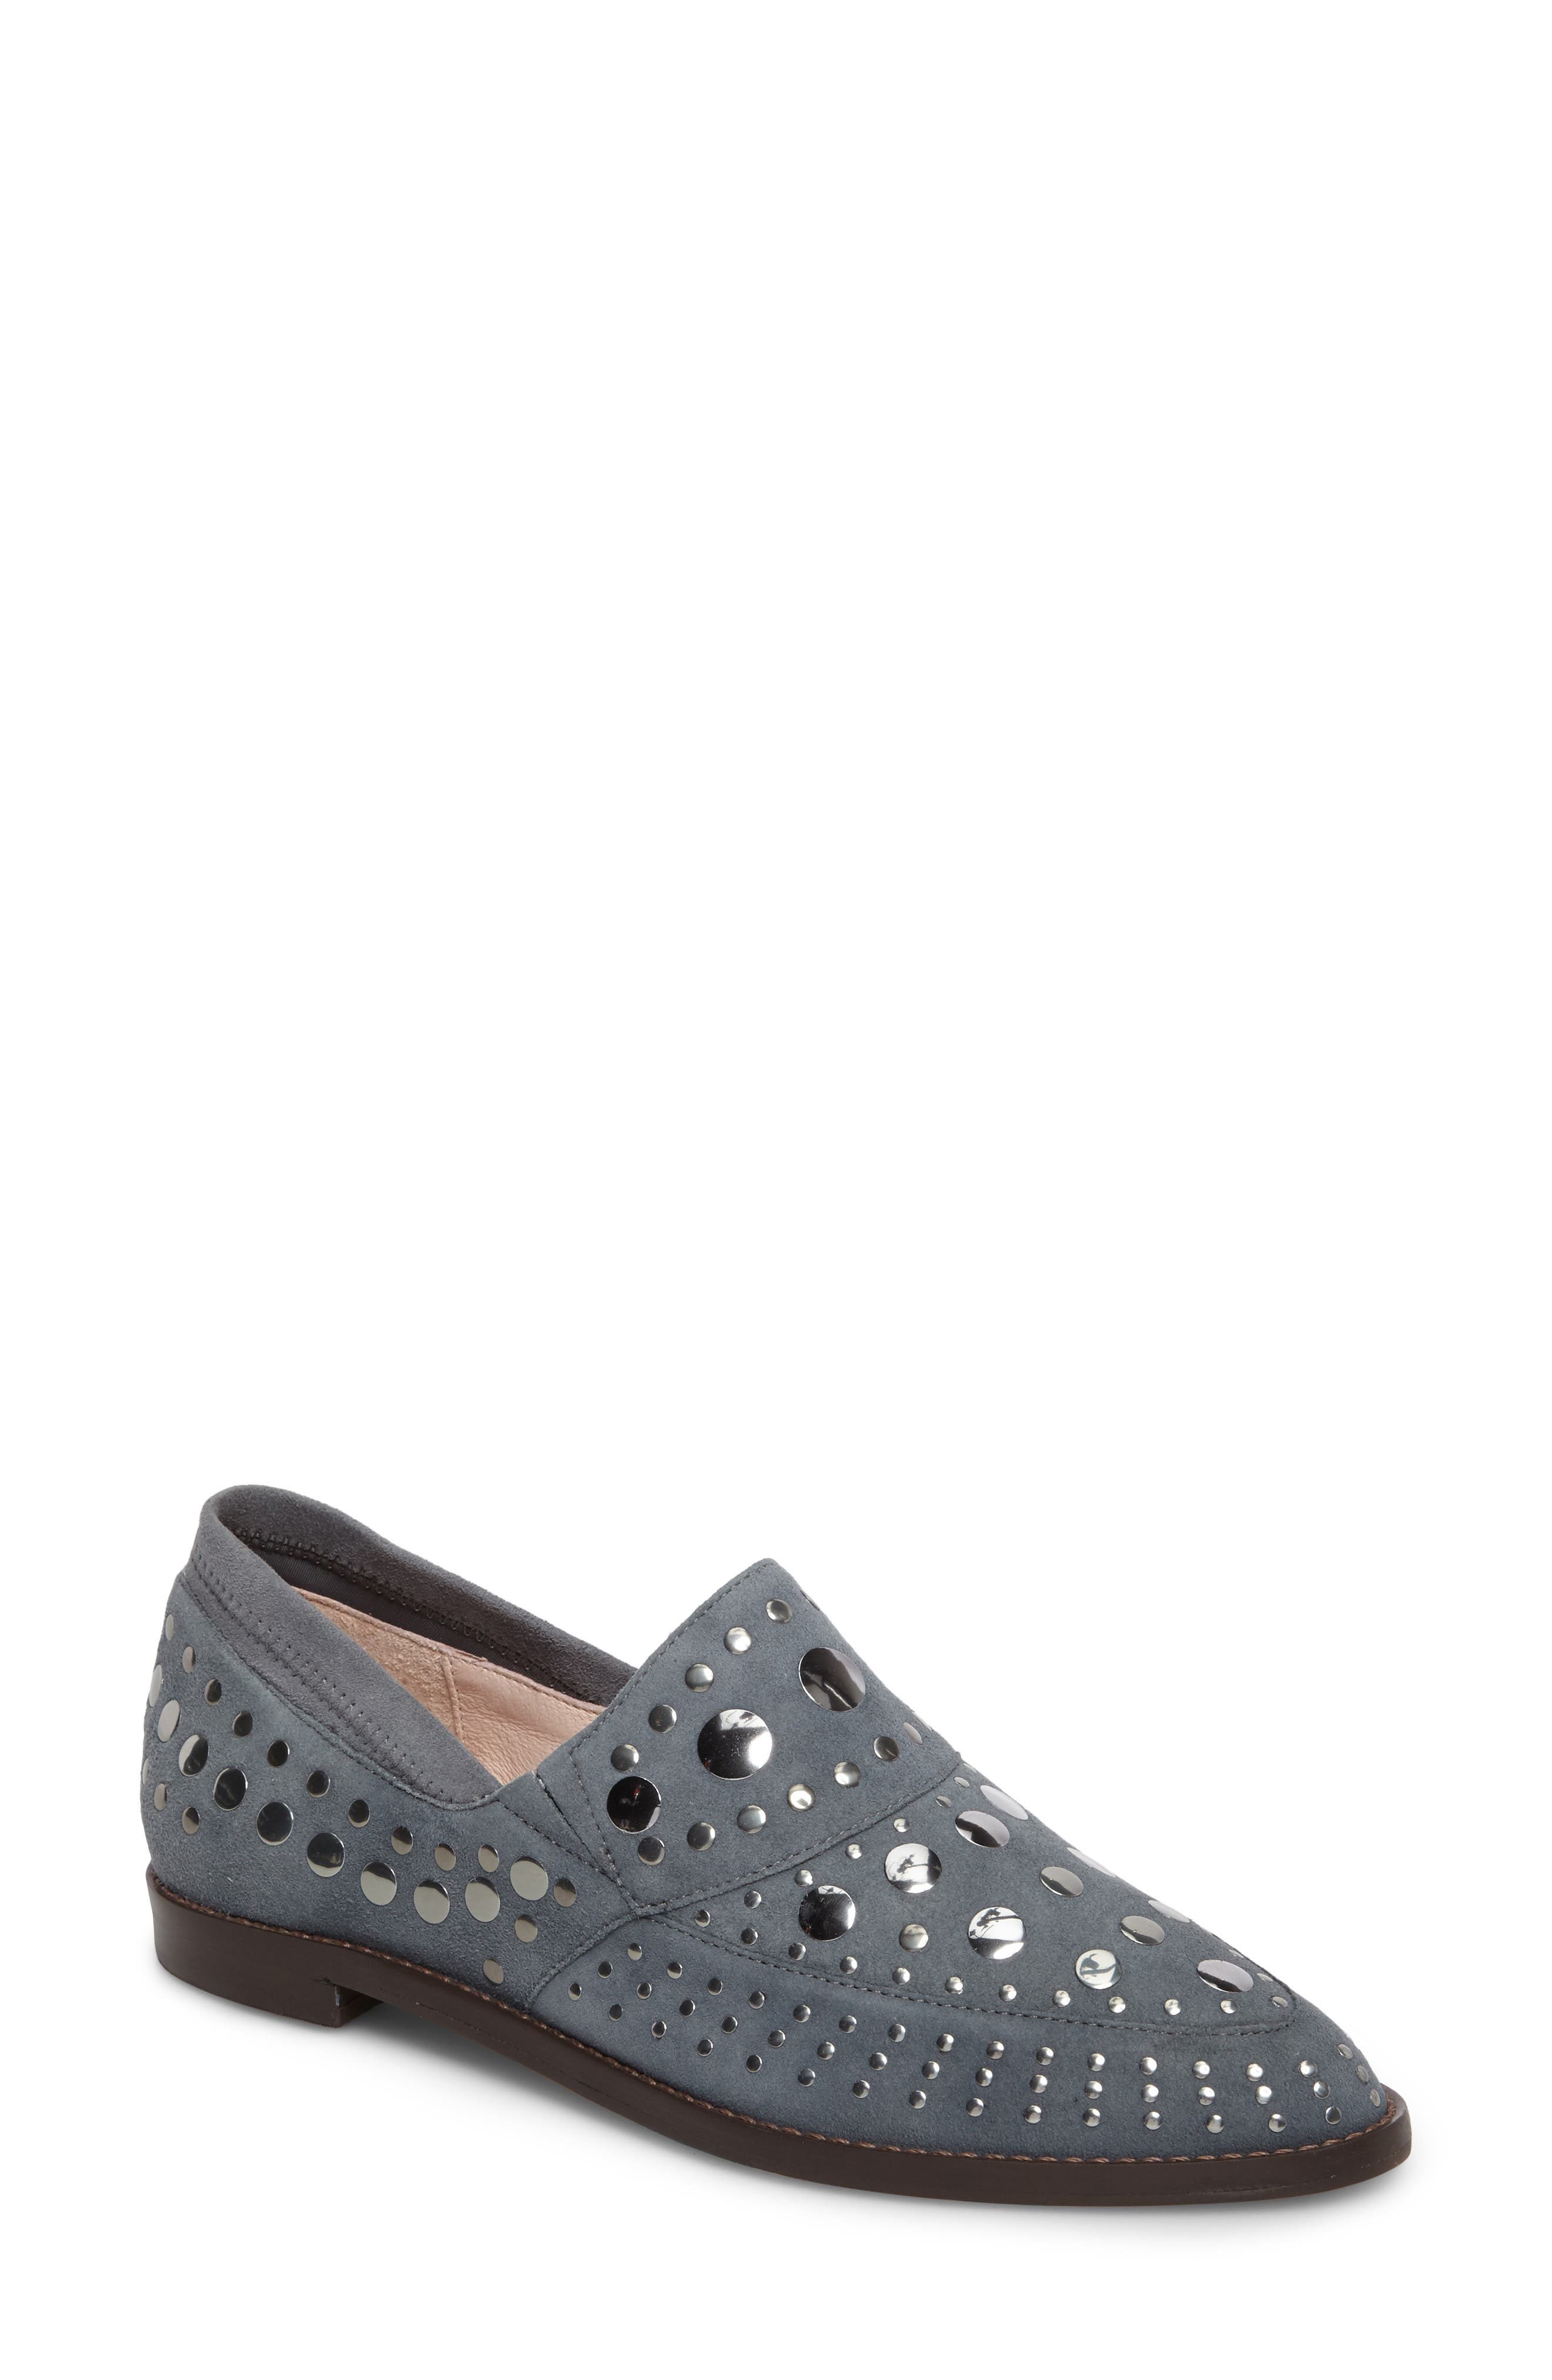 Ping Studded Loafer,                             Main thumbnail 1, color,                             Ink Leather